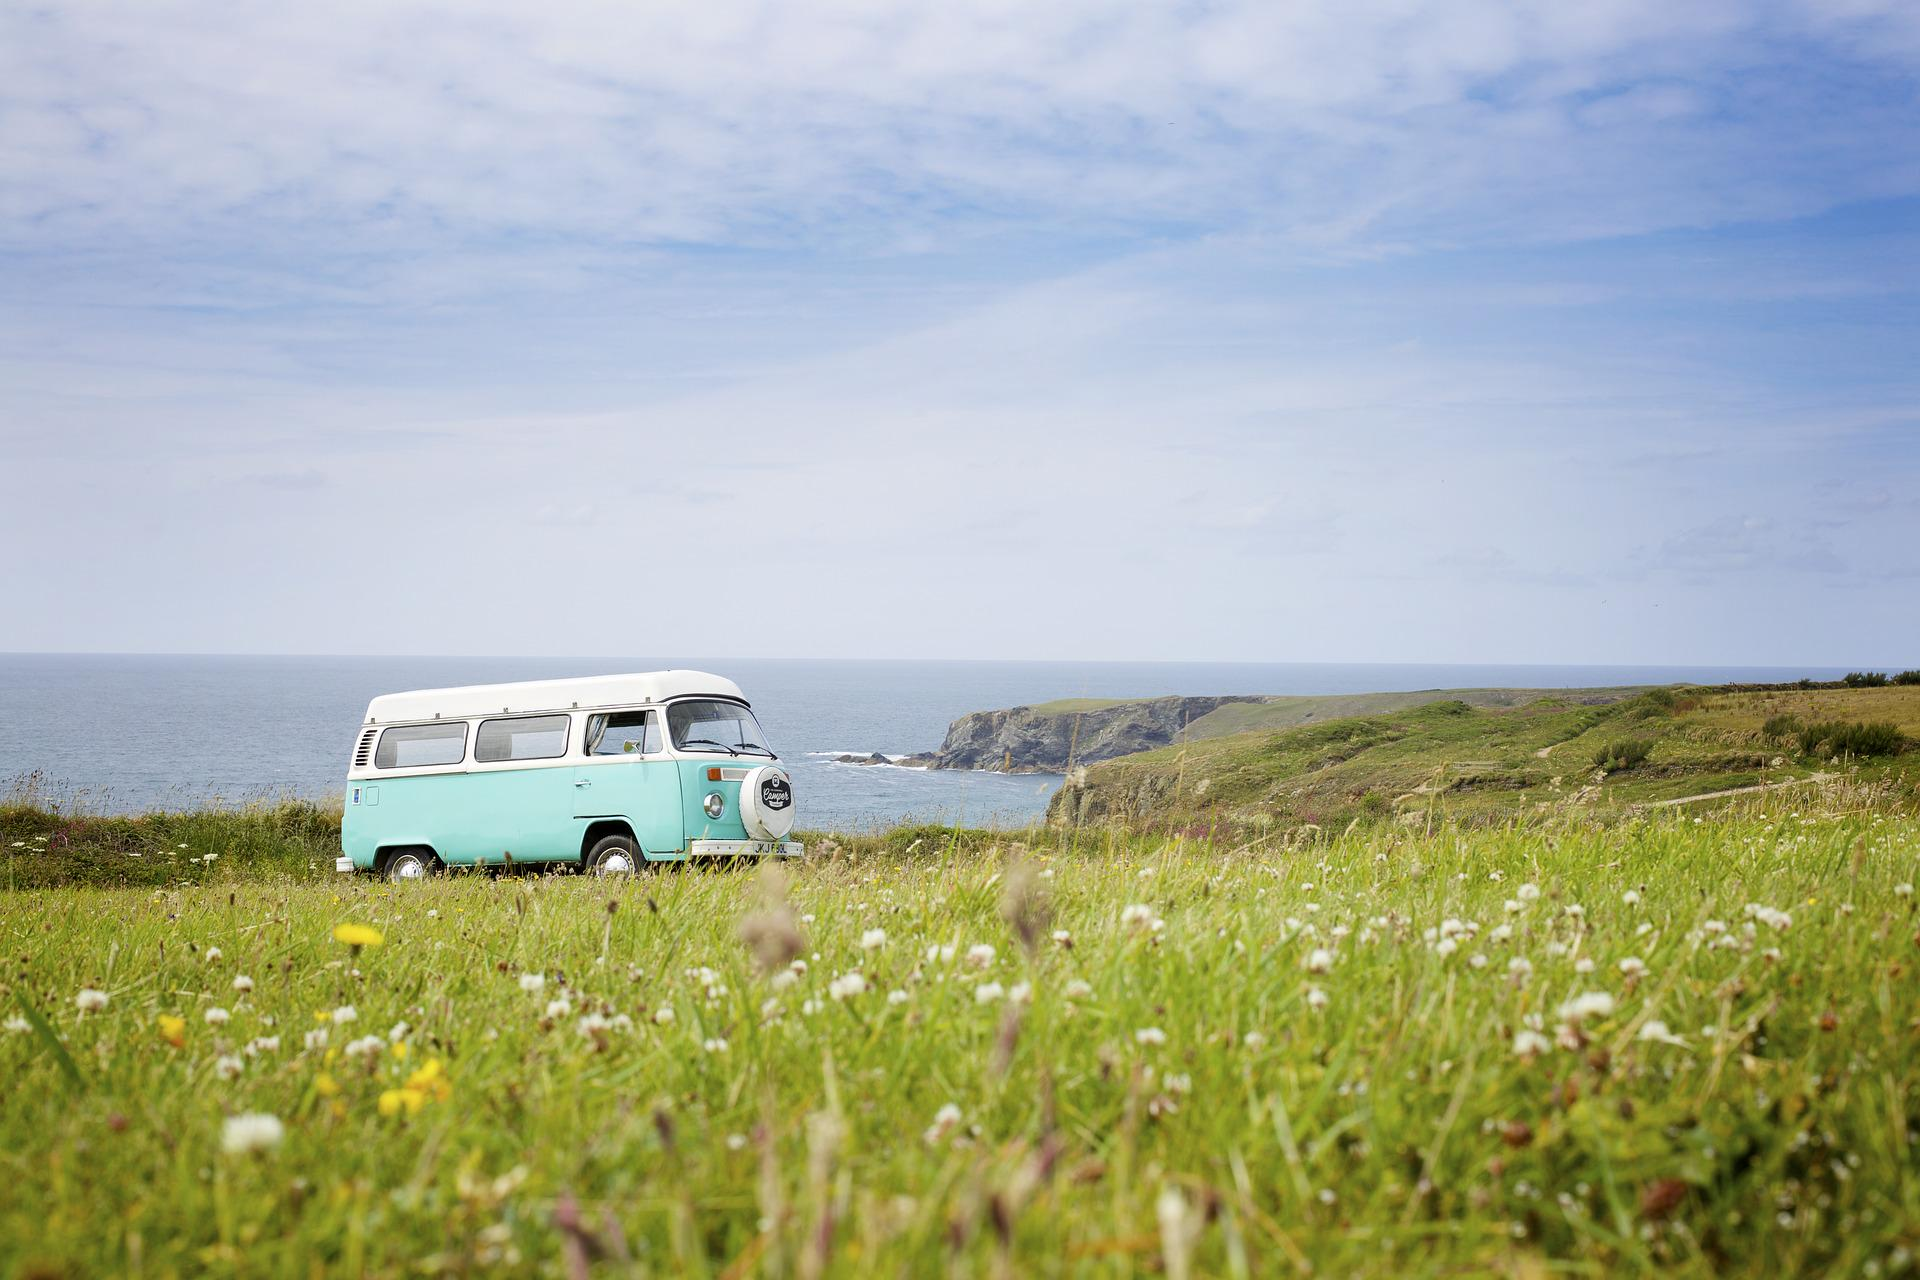 Campervan Hire in England, London or the UK